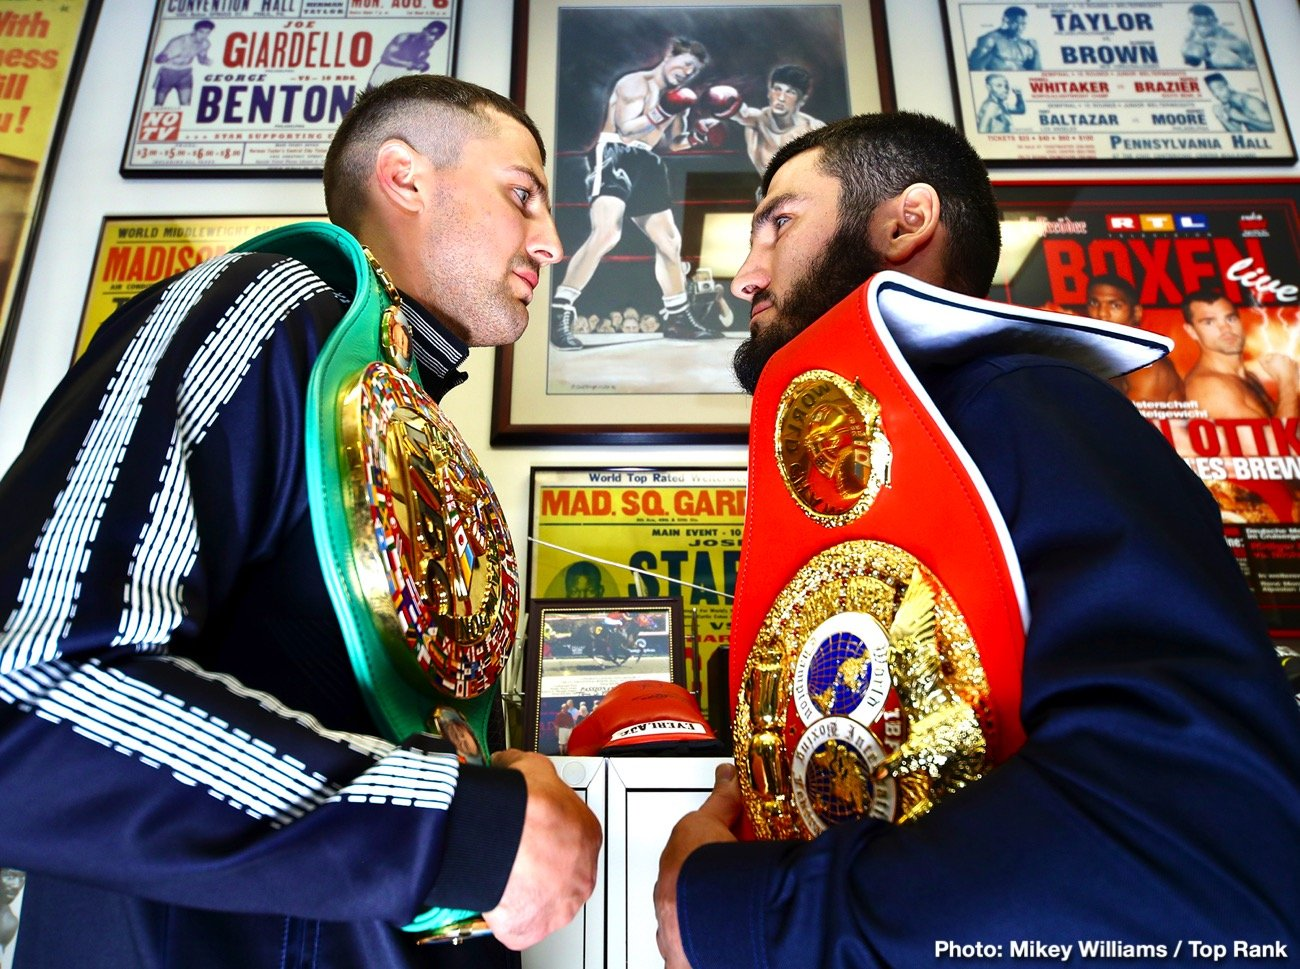 Luis Collazo - IBF light heavyweight world champion Artur Beterbiev and WBC light heavyweight world champion Oleksandr Gvozdyk ended their fight promotion obligations Wednesday at the office of Hall of Fame promoter J Russell Peltz. They posed for pictures in front of the fight poster for the legendary 1962 light heavyweight championship fight between Doug Jones and Harold Johnson, which took place at the old Philadelphia Arena.